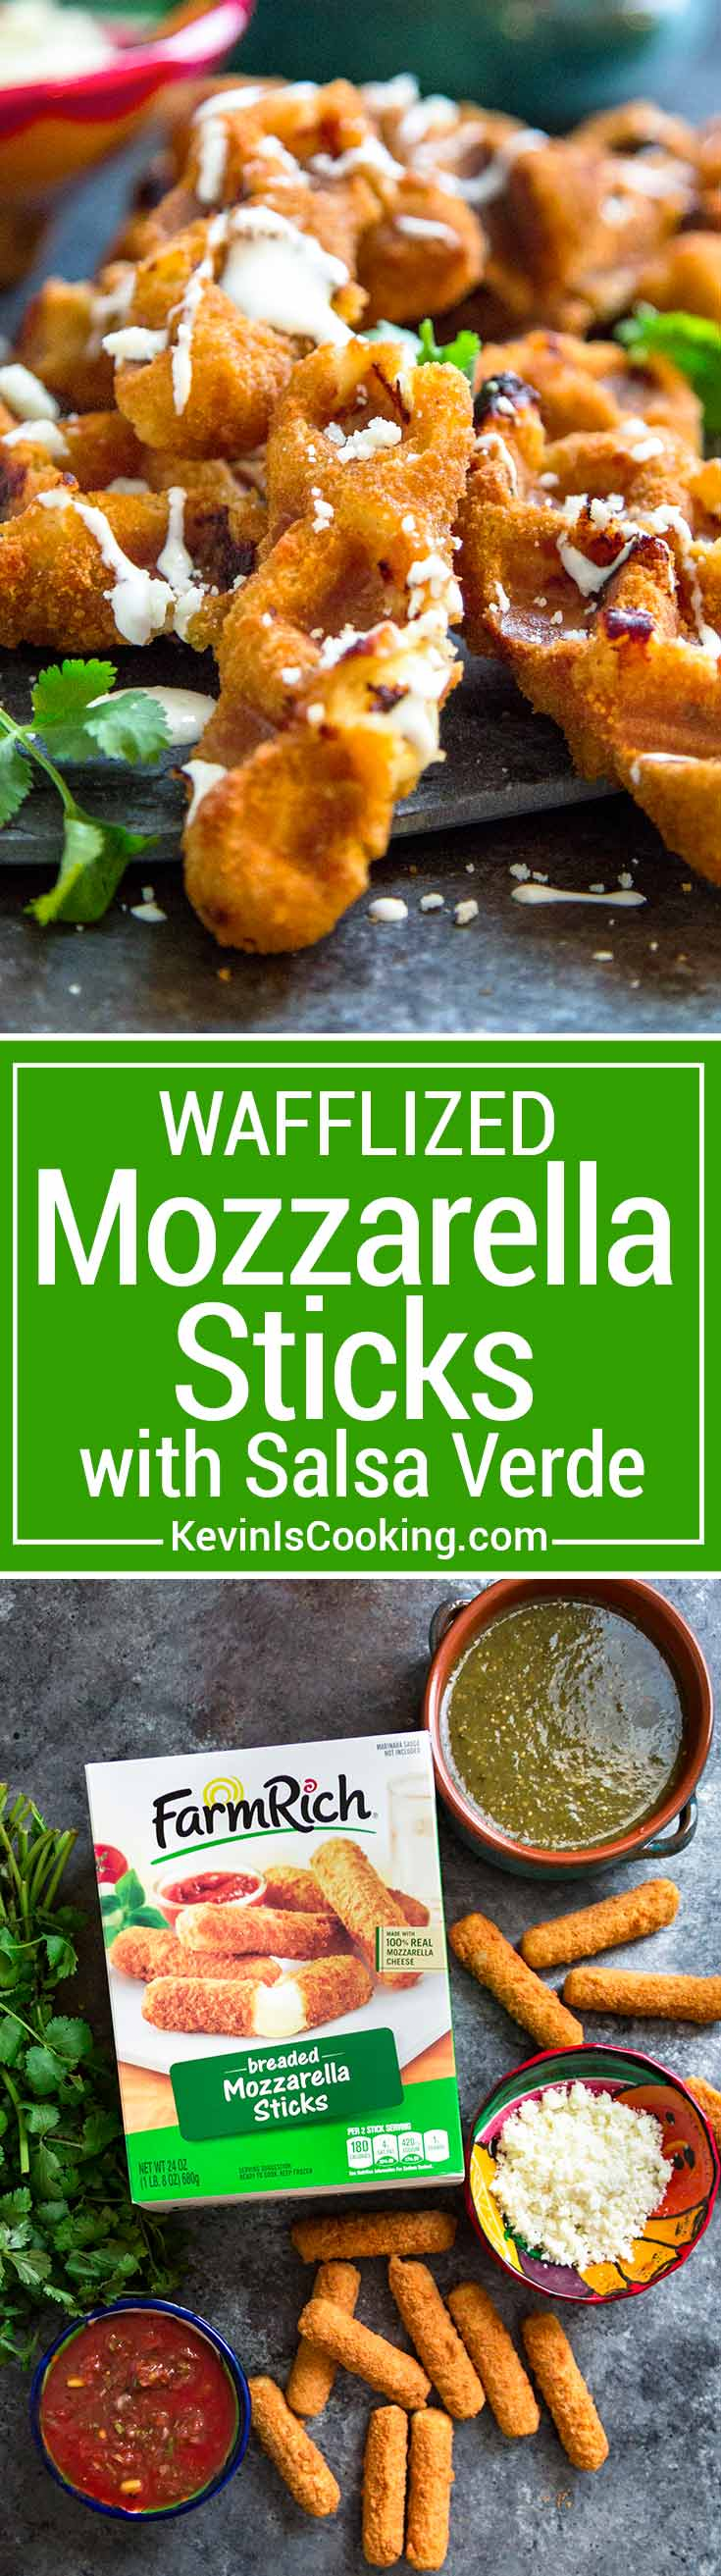 These Wafflized Mozzarella Sticks with Salsa start out with frozen mozzarella sticks that get the waffle treatment. More crunchy edges, more cooked cheese, these are perfect for dunking and eating for the big game day party! #HalftimeHero @FarmRichSnacks #spon